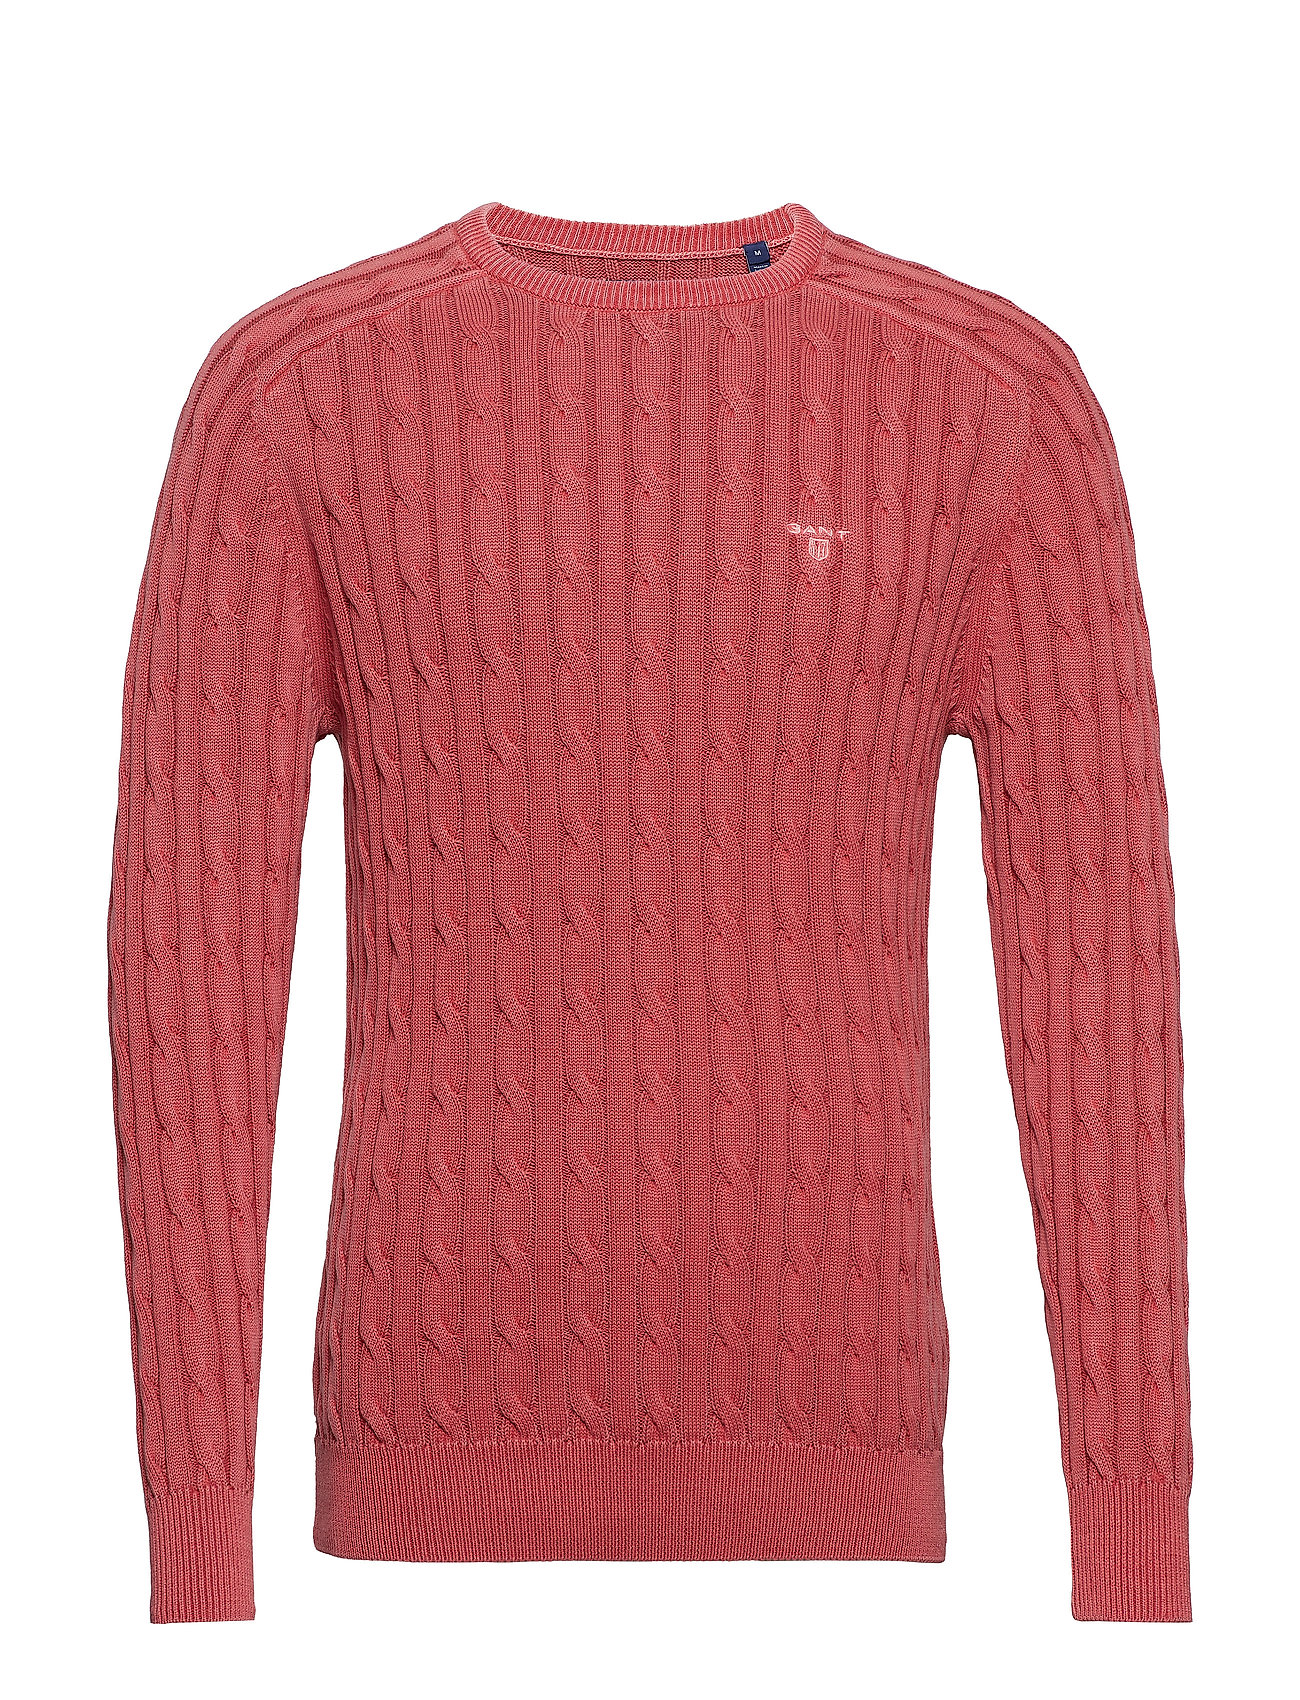 Gant O2. SUNBLEACHED CABLE CREW - CARDINAL RED